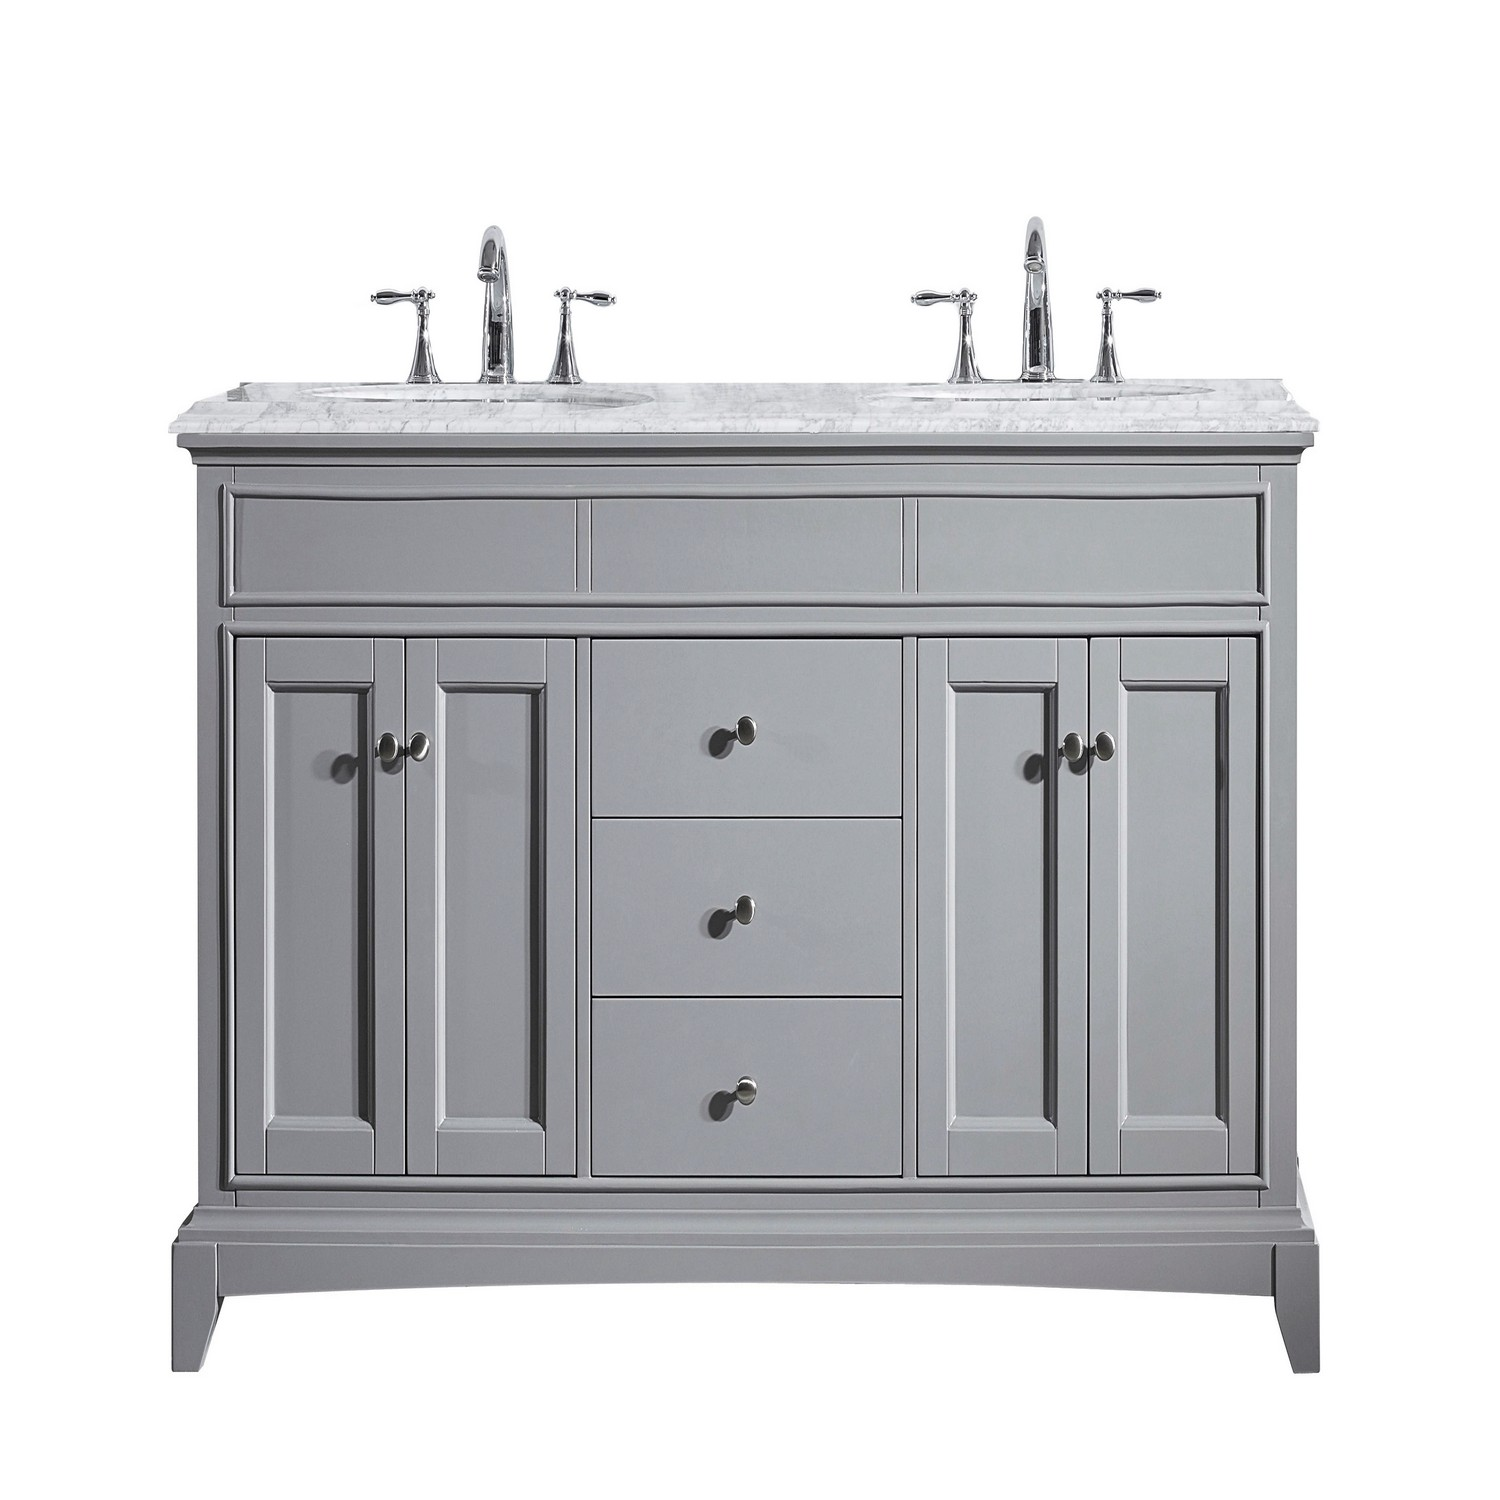 download inch enchanting here bathroom upload solid trends vanity unit cabinet this cabinets picture ity real oak top wood